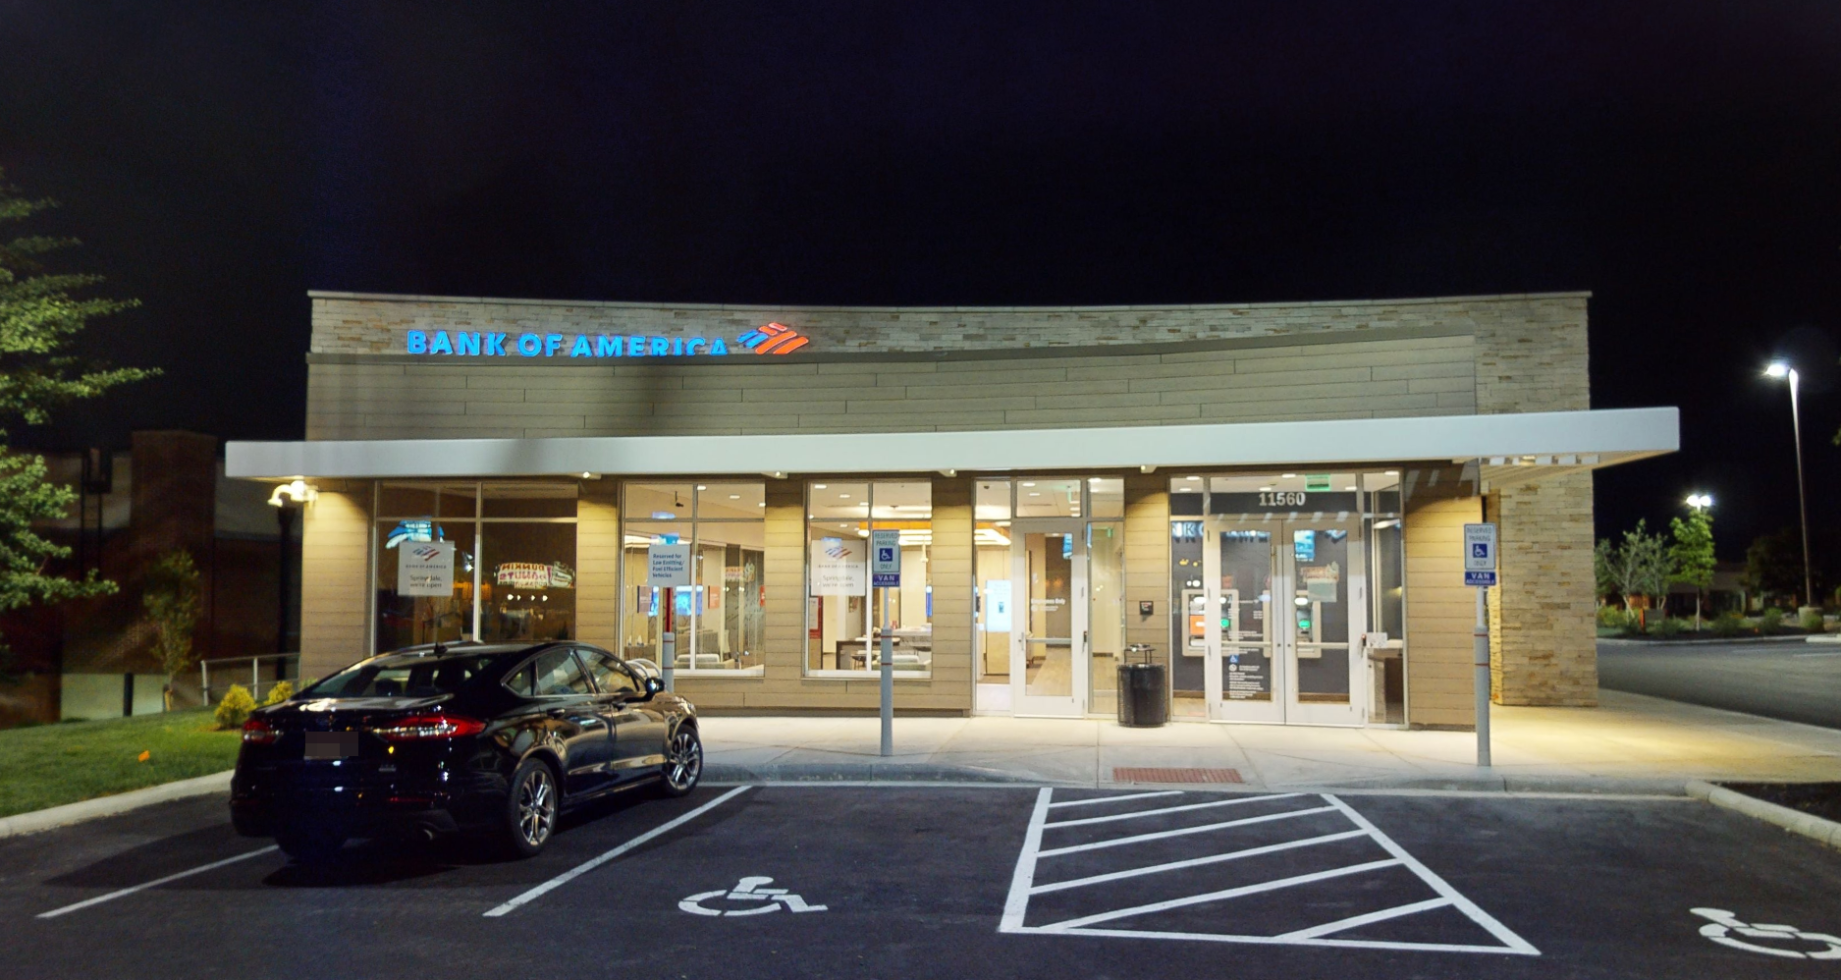 Bank of America financial center with drive-thru ATM | 11560 Princeton Pike, Springdale, OH 45246